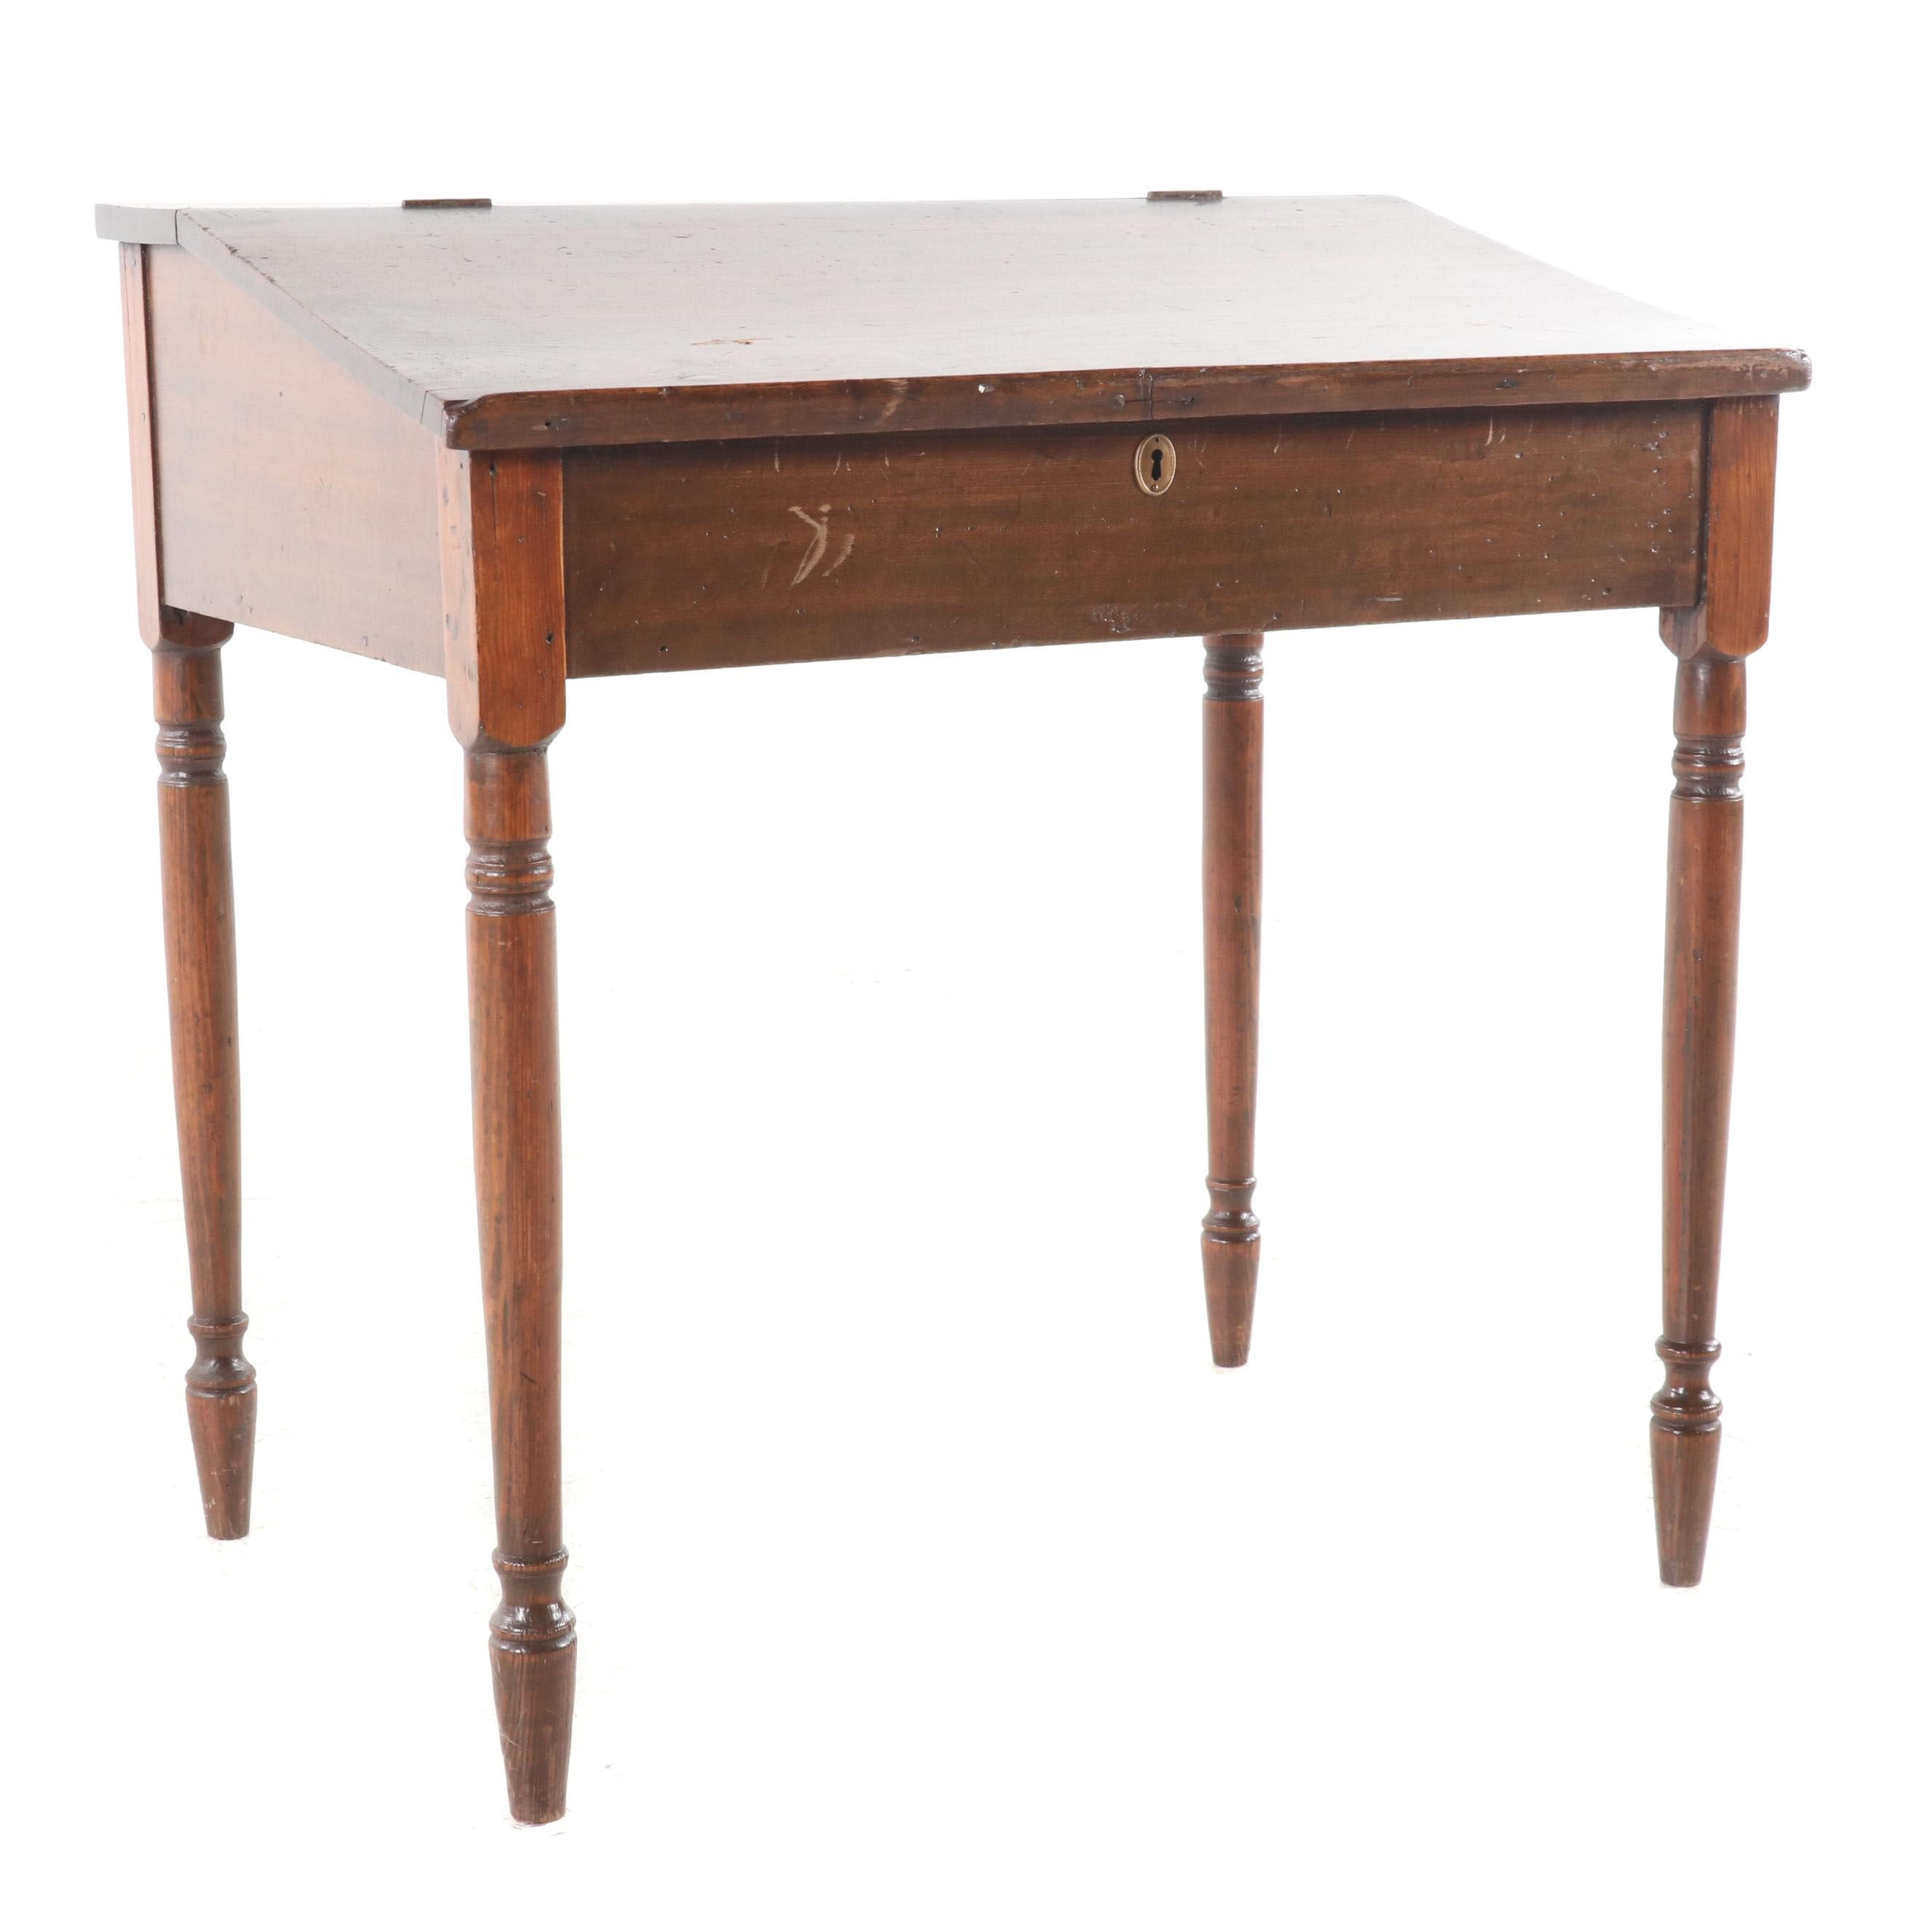 Federal Style Poplar Flip Top Desk, Mid 19th Century